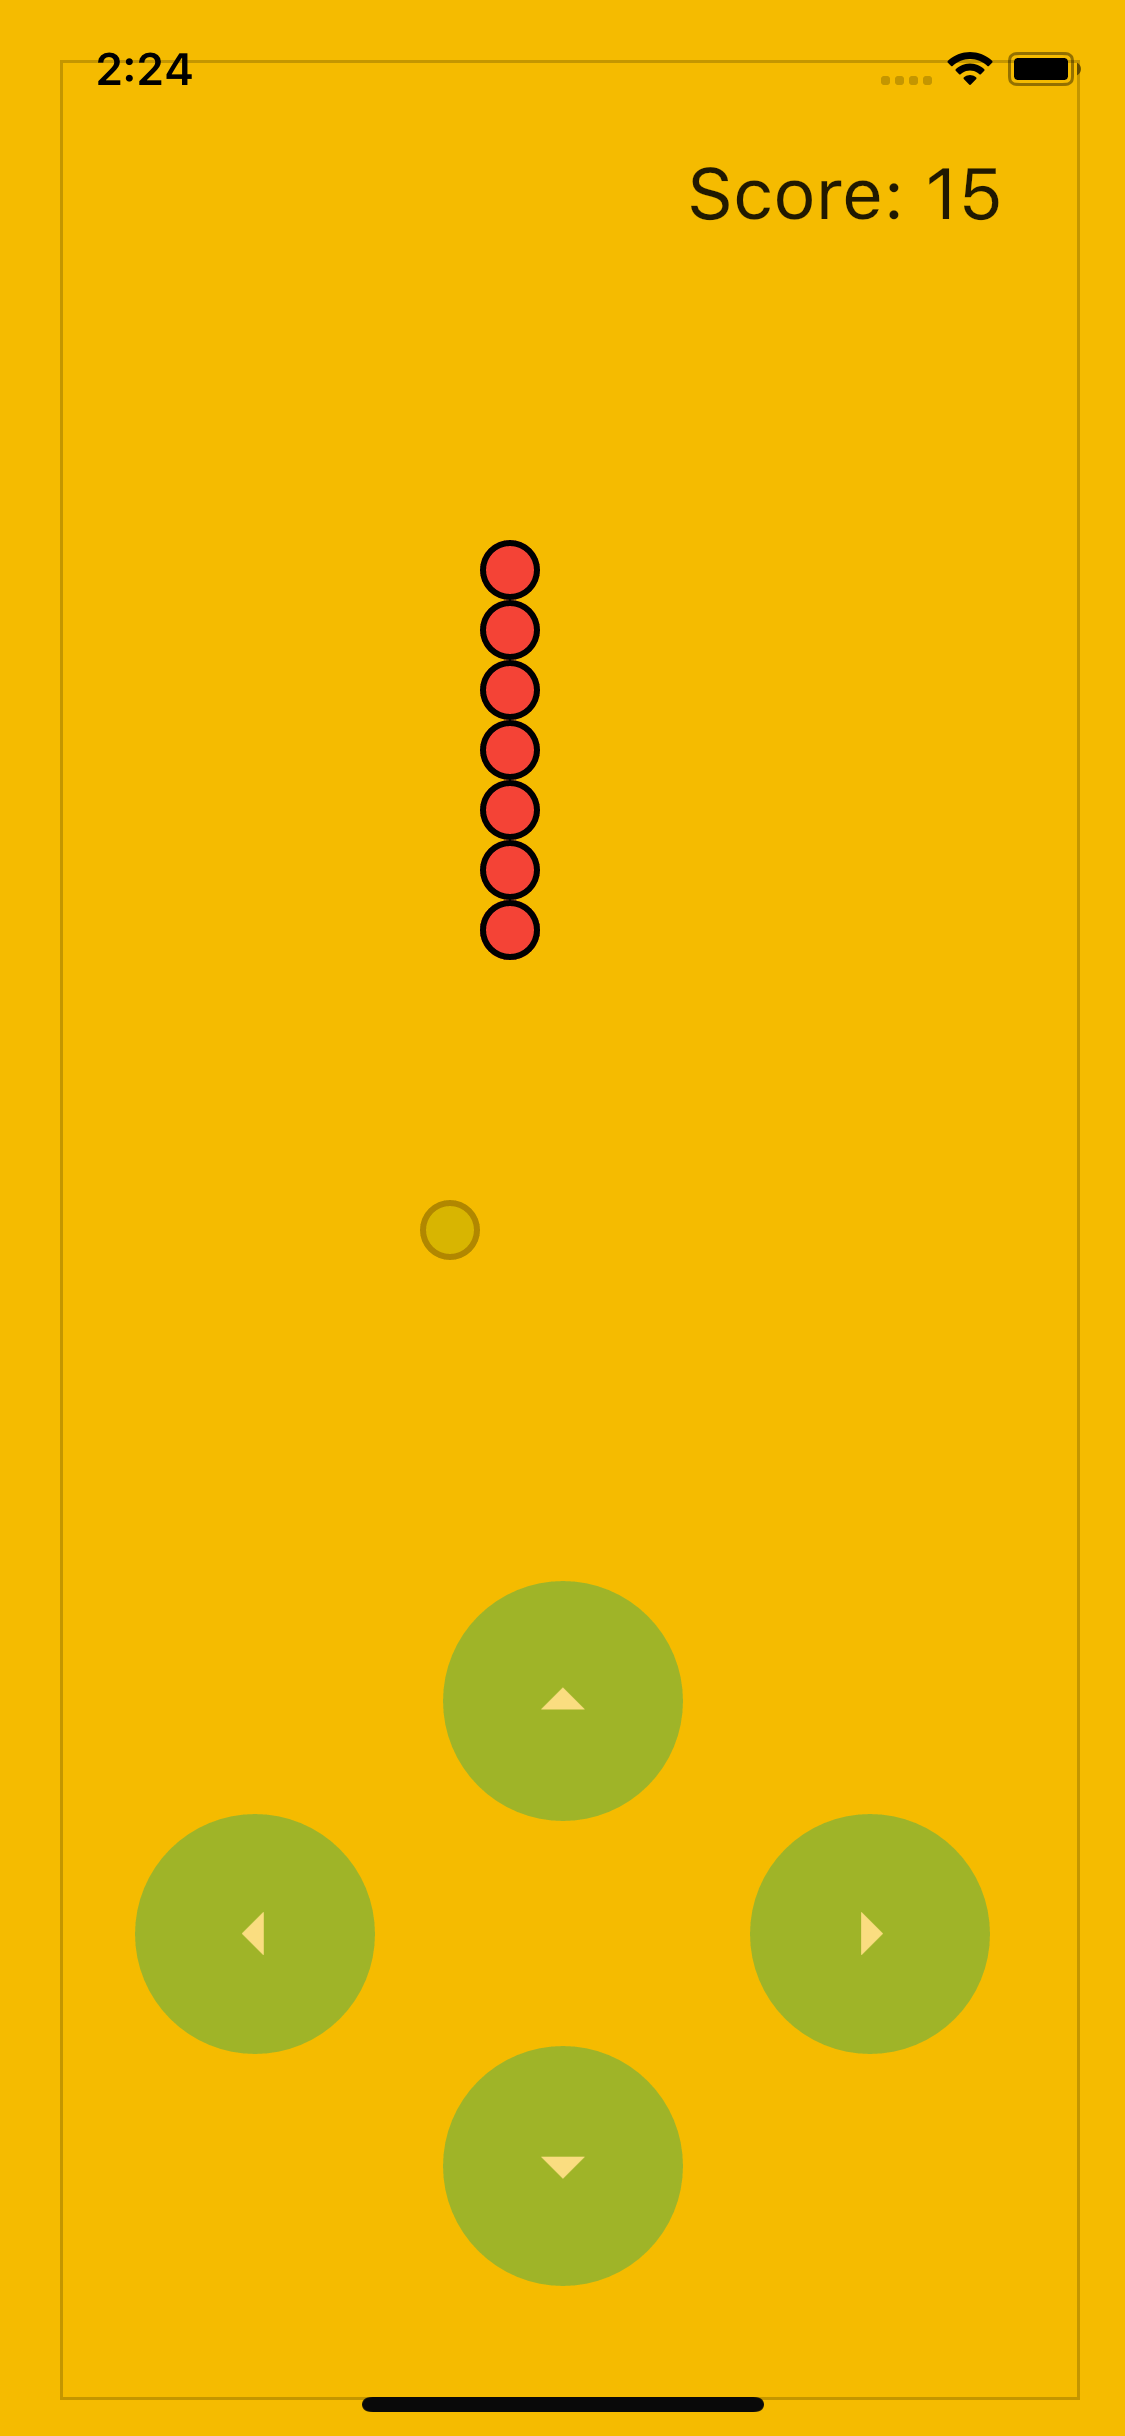 The final Snake Game with score